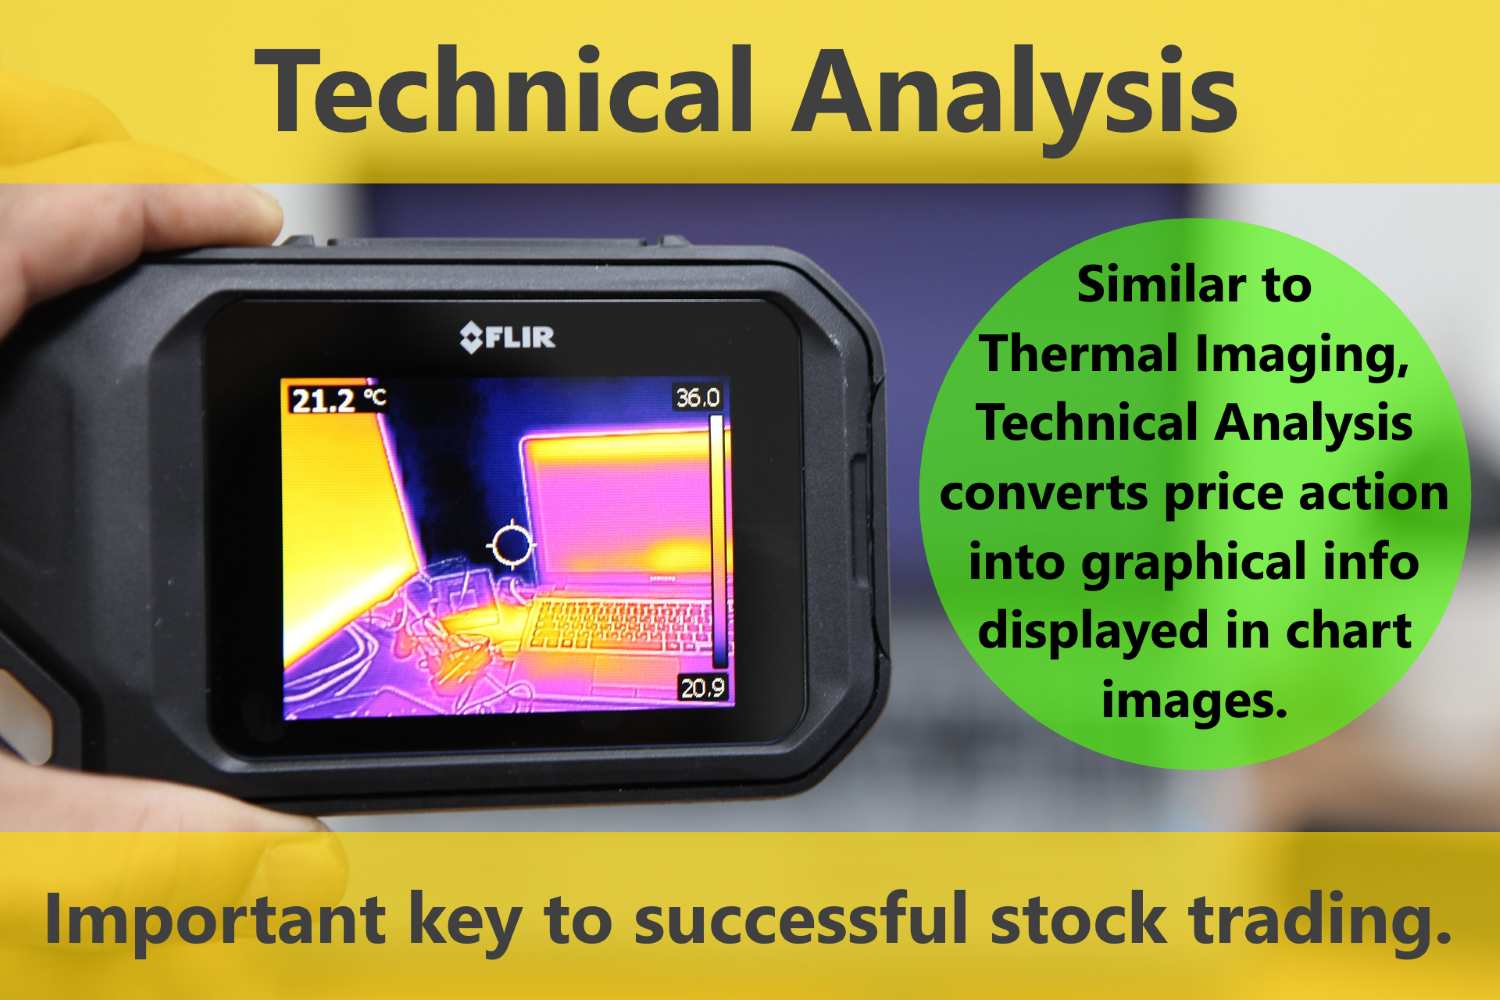 Similar to thermal imaging, technical analysis converts price action into informational graphics that can be used when trading stocks online.